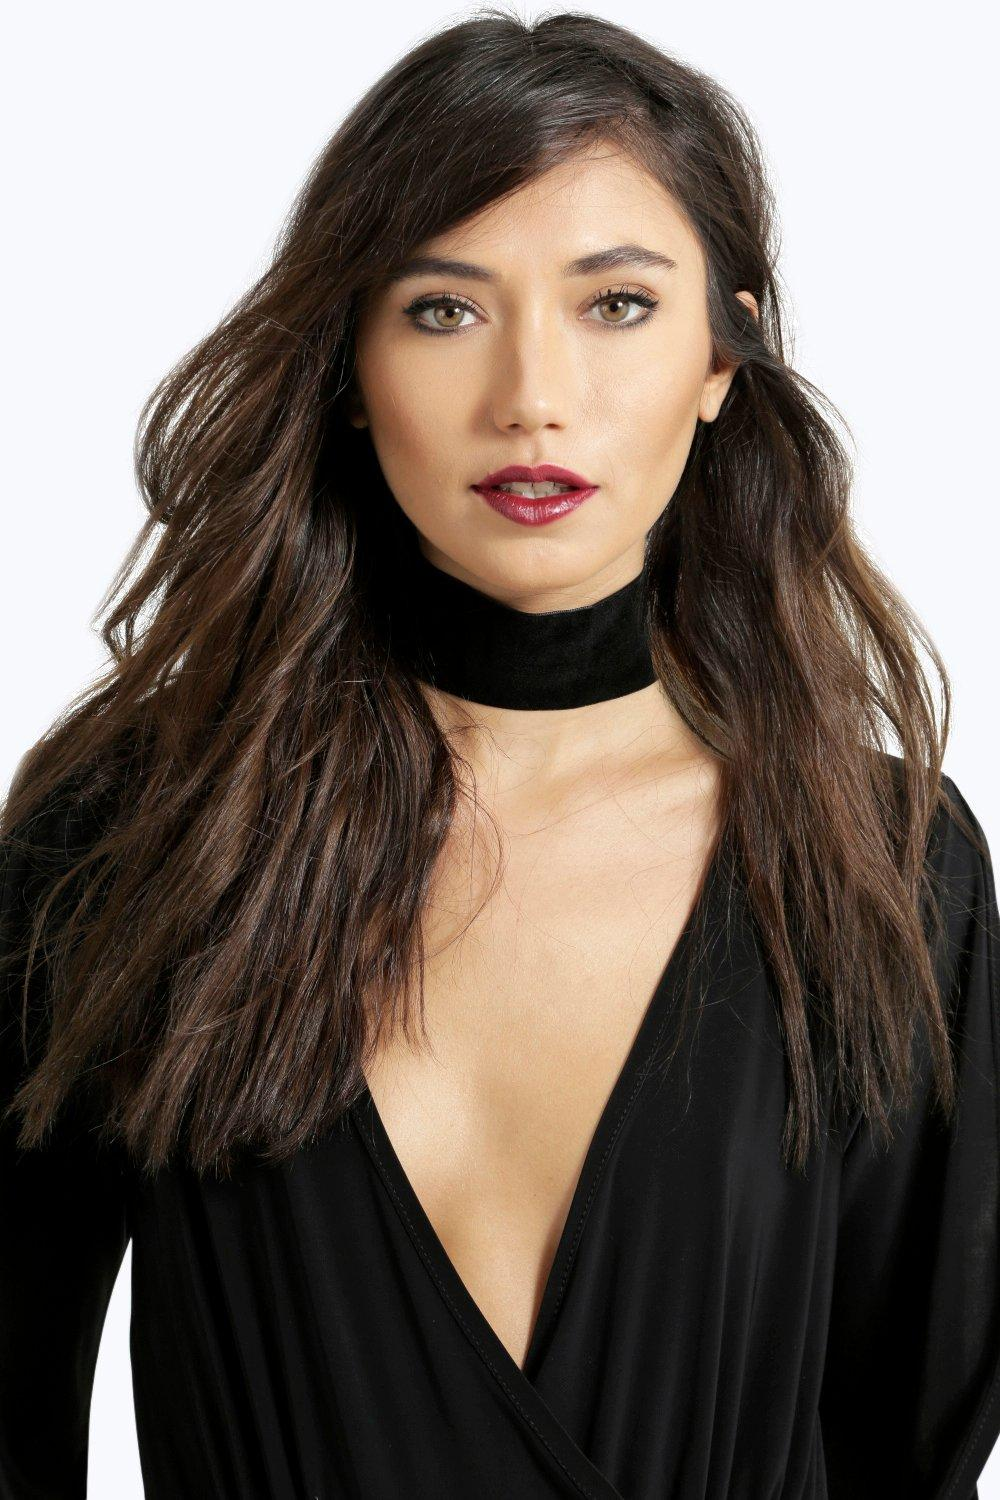 A model is wearing an extra wide black choker and a black v-neck top